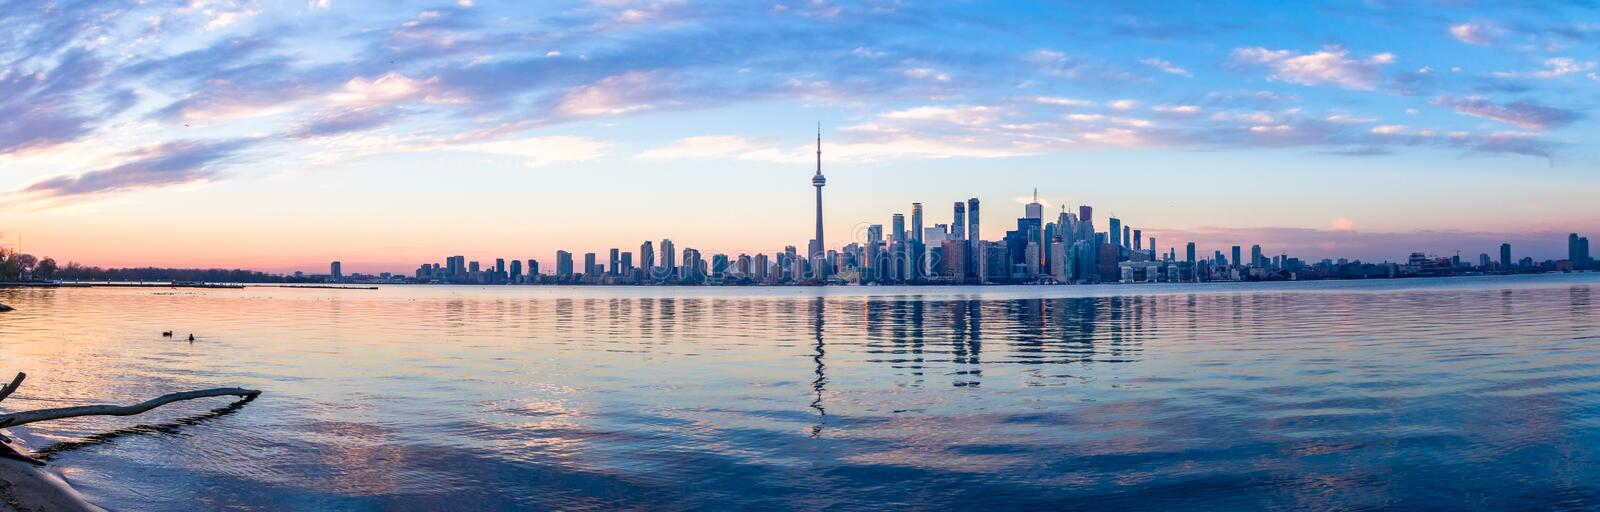 Panoramic view of Toronto skyline and Ontario lake - Toronto, Ontario, Canada royalty free stock images